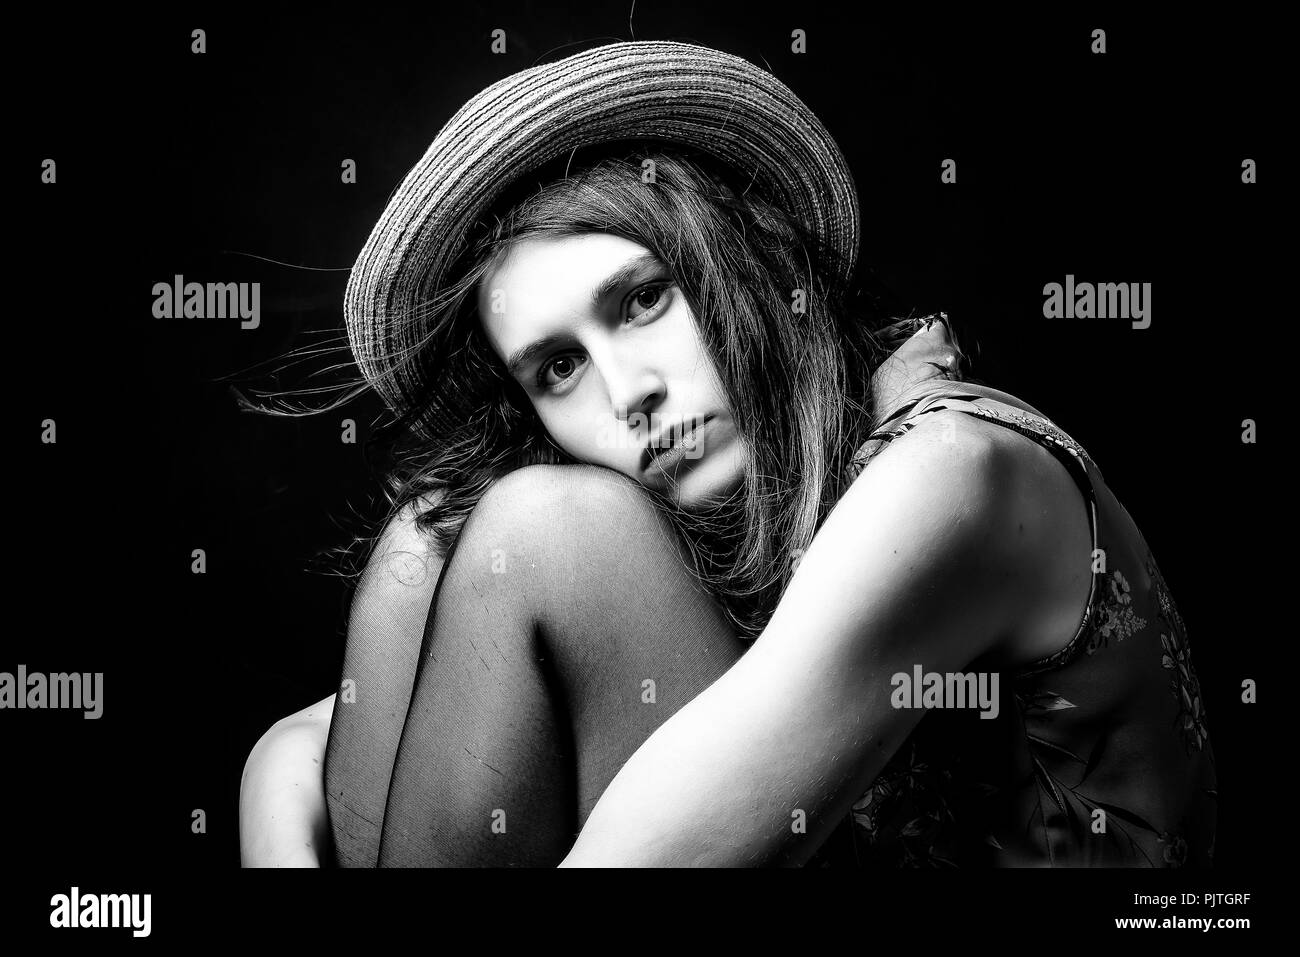 Studio image of a young woman sitting on a stool hugging her knees in a depressed frame of mind - Stock Image